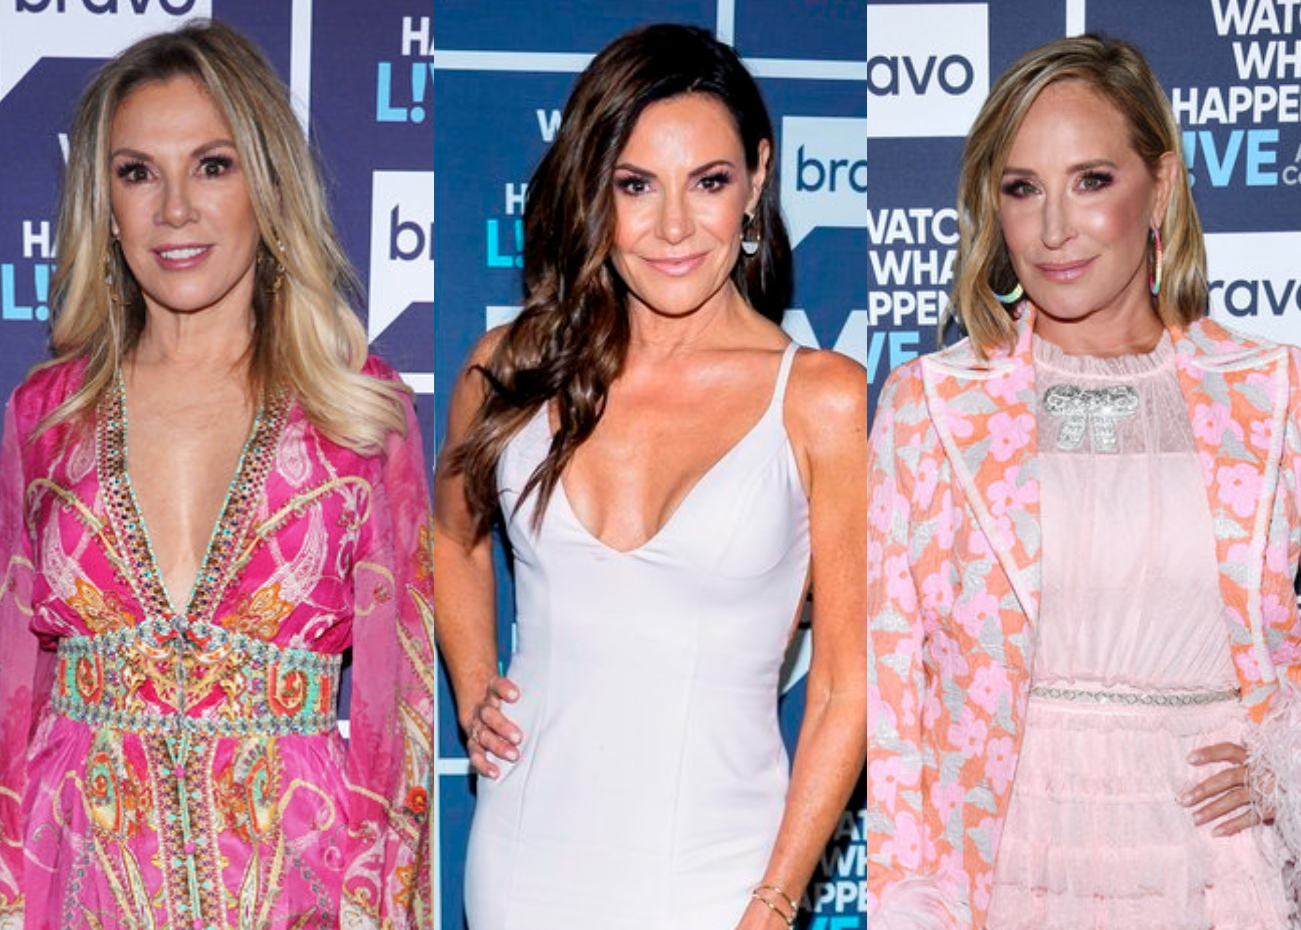 REPORT: RHONY's Ramona Singer, Luann de Lesseps, and Sonja Morgan Offered 'Friend' Roles for Season 14 as Bravo Considers Shelving Series Until Late 2022